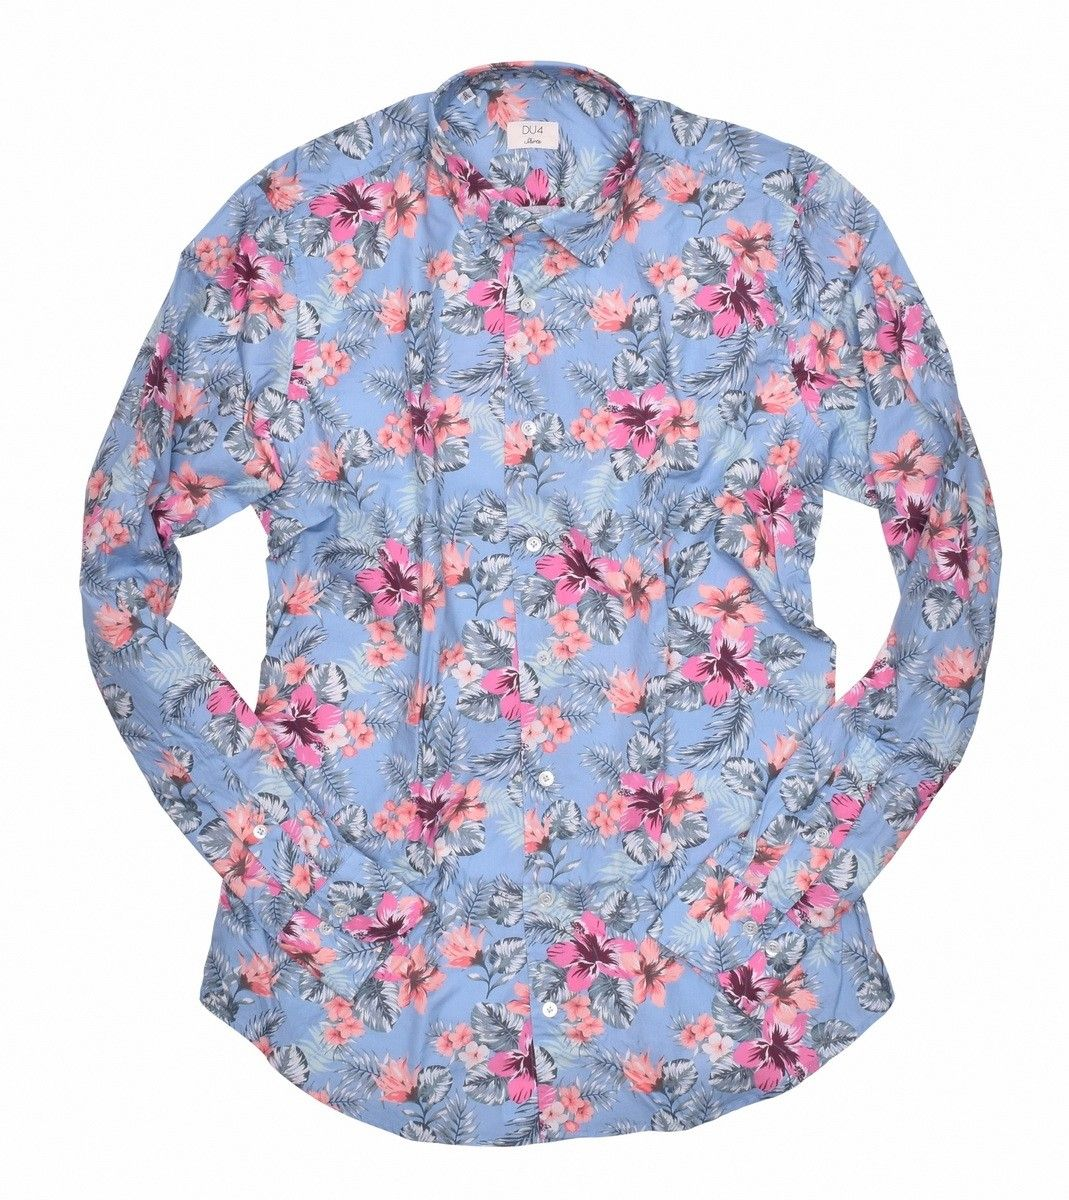 DU4 - Herren Hemd - Kay SF SP - Hawaii Flower